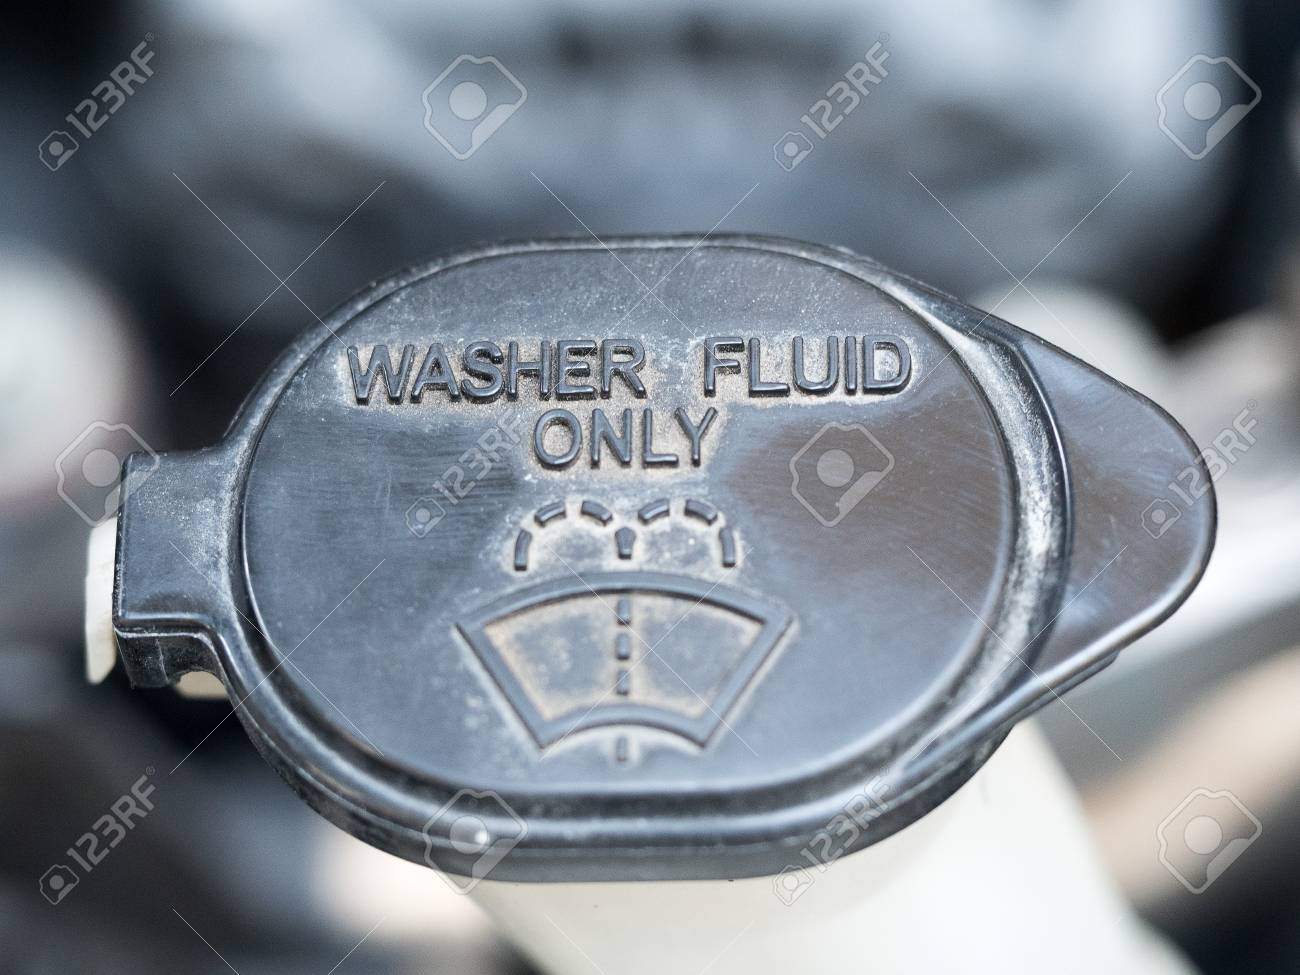 Washer Fluid Symbol Of Washer Fluid Close Up Of Black Washer